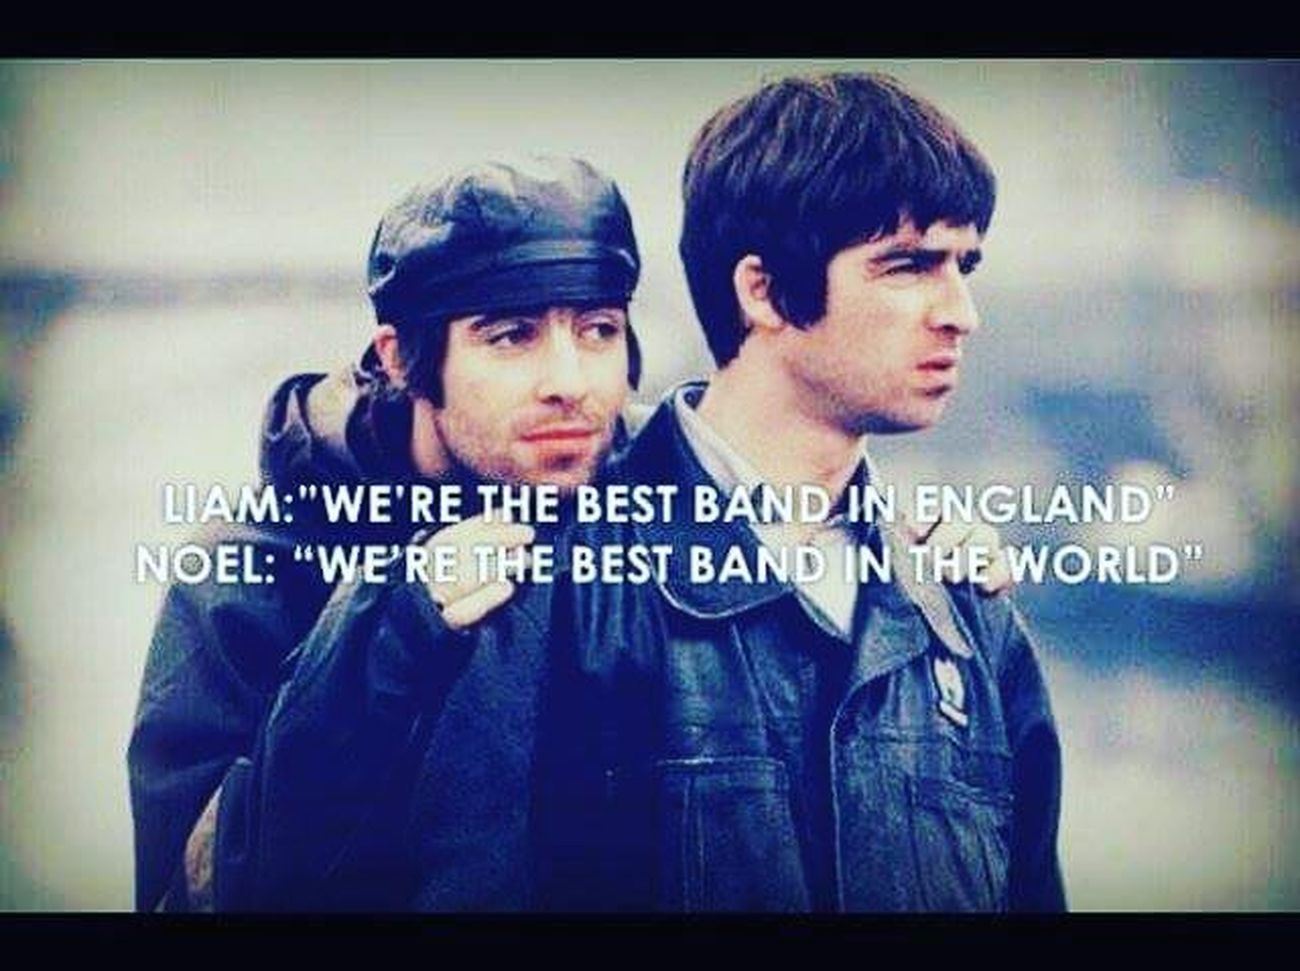 NoelGallagher Liamgallagher Oasis Morningglory Liveforever Rockandrollstar Scottsmenswear Gallagherbrothers